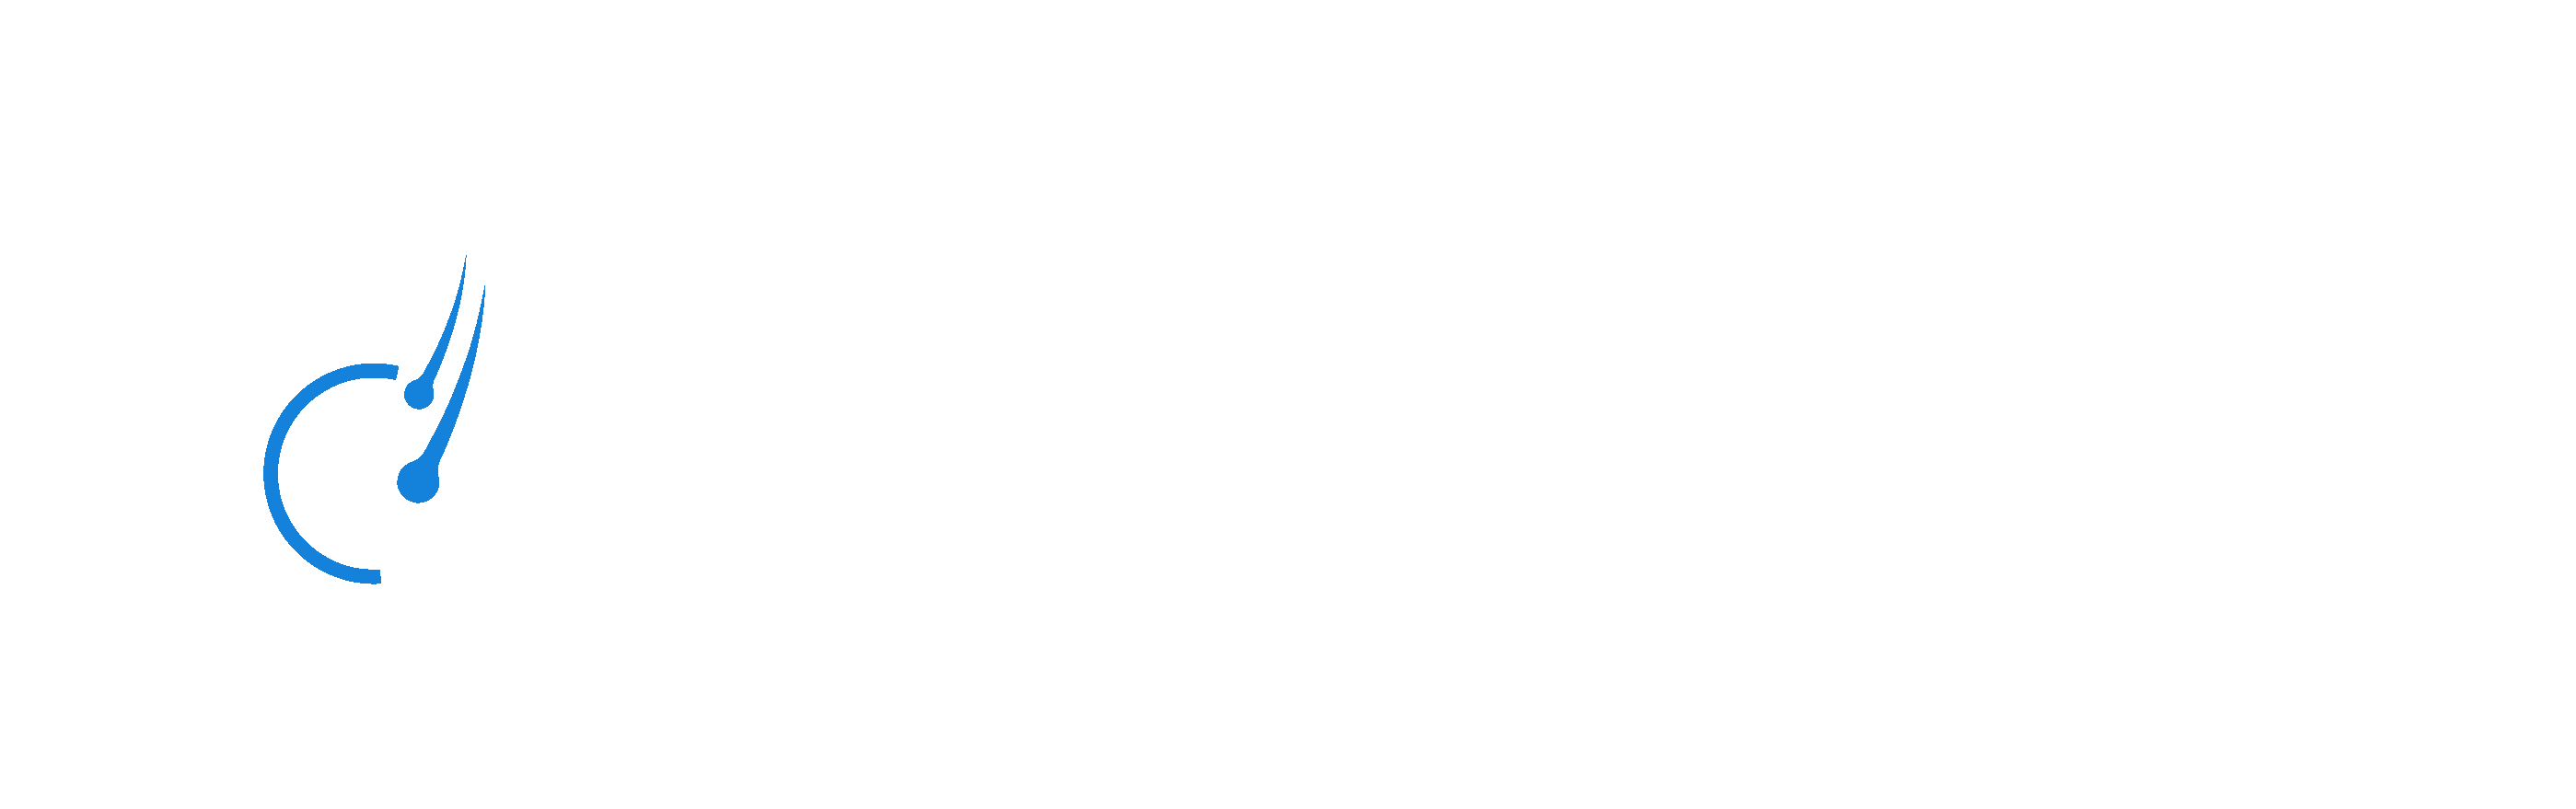 Perfect Hair Health